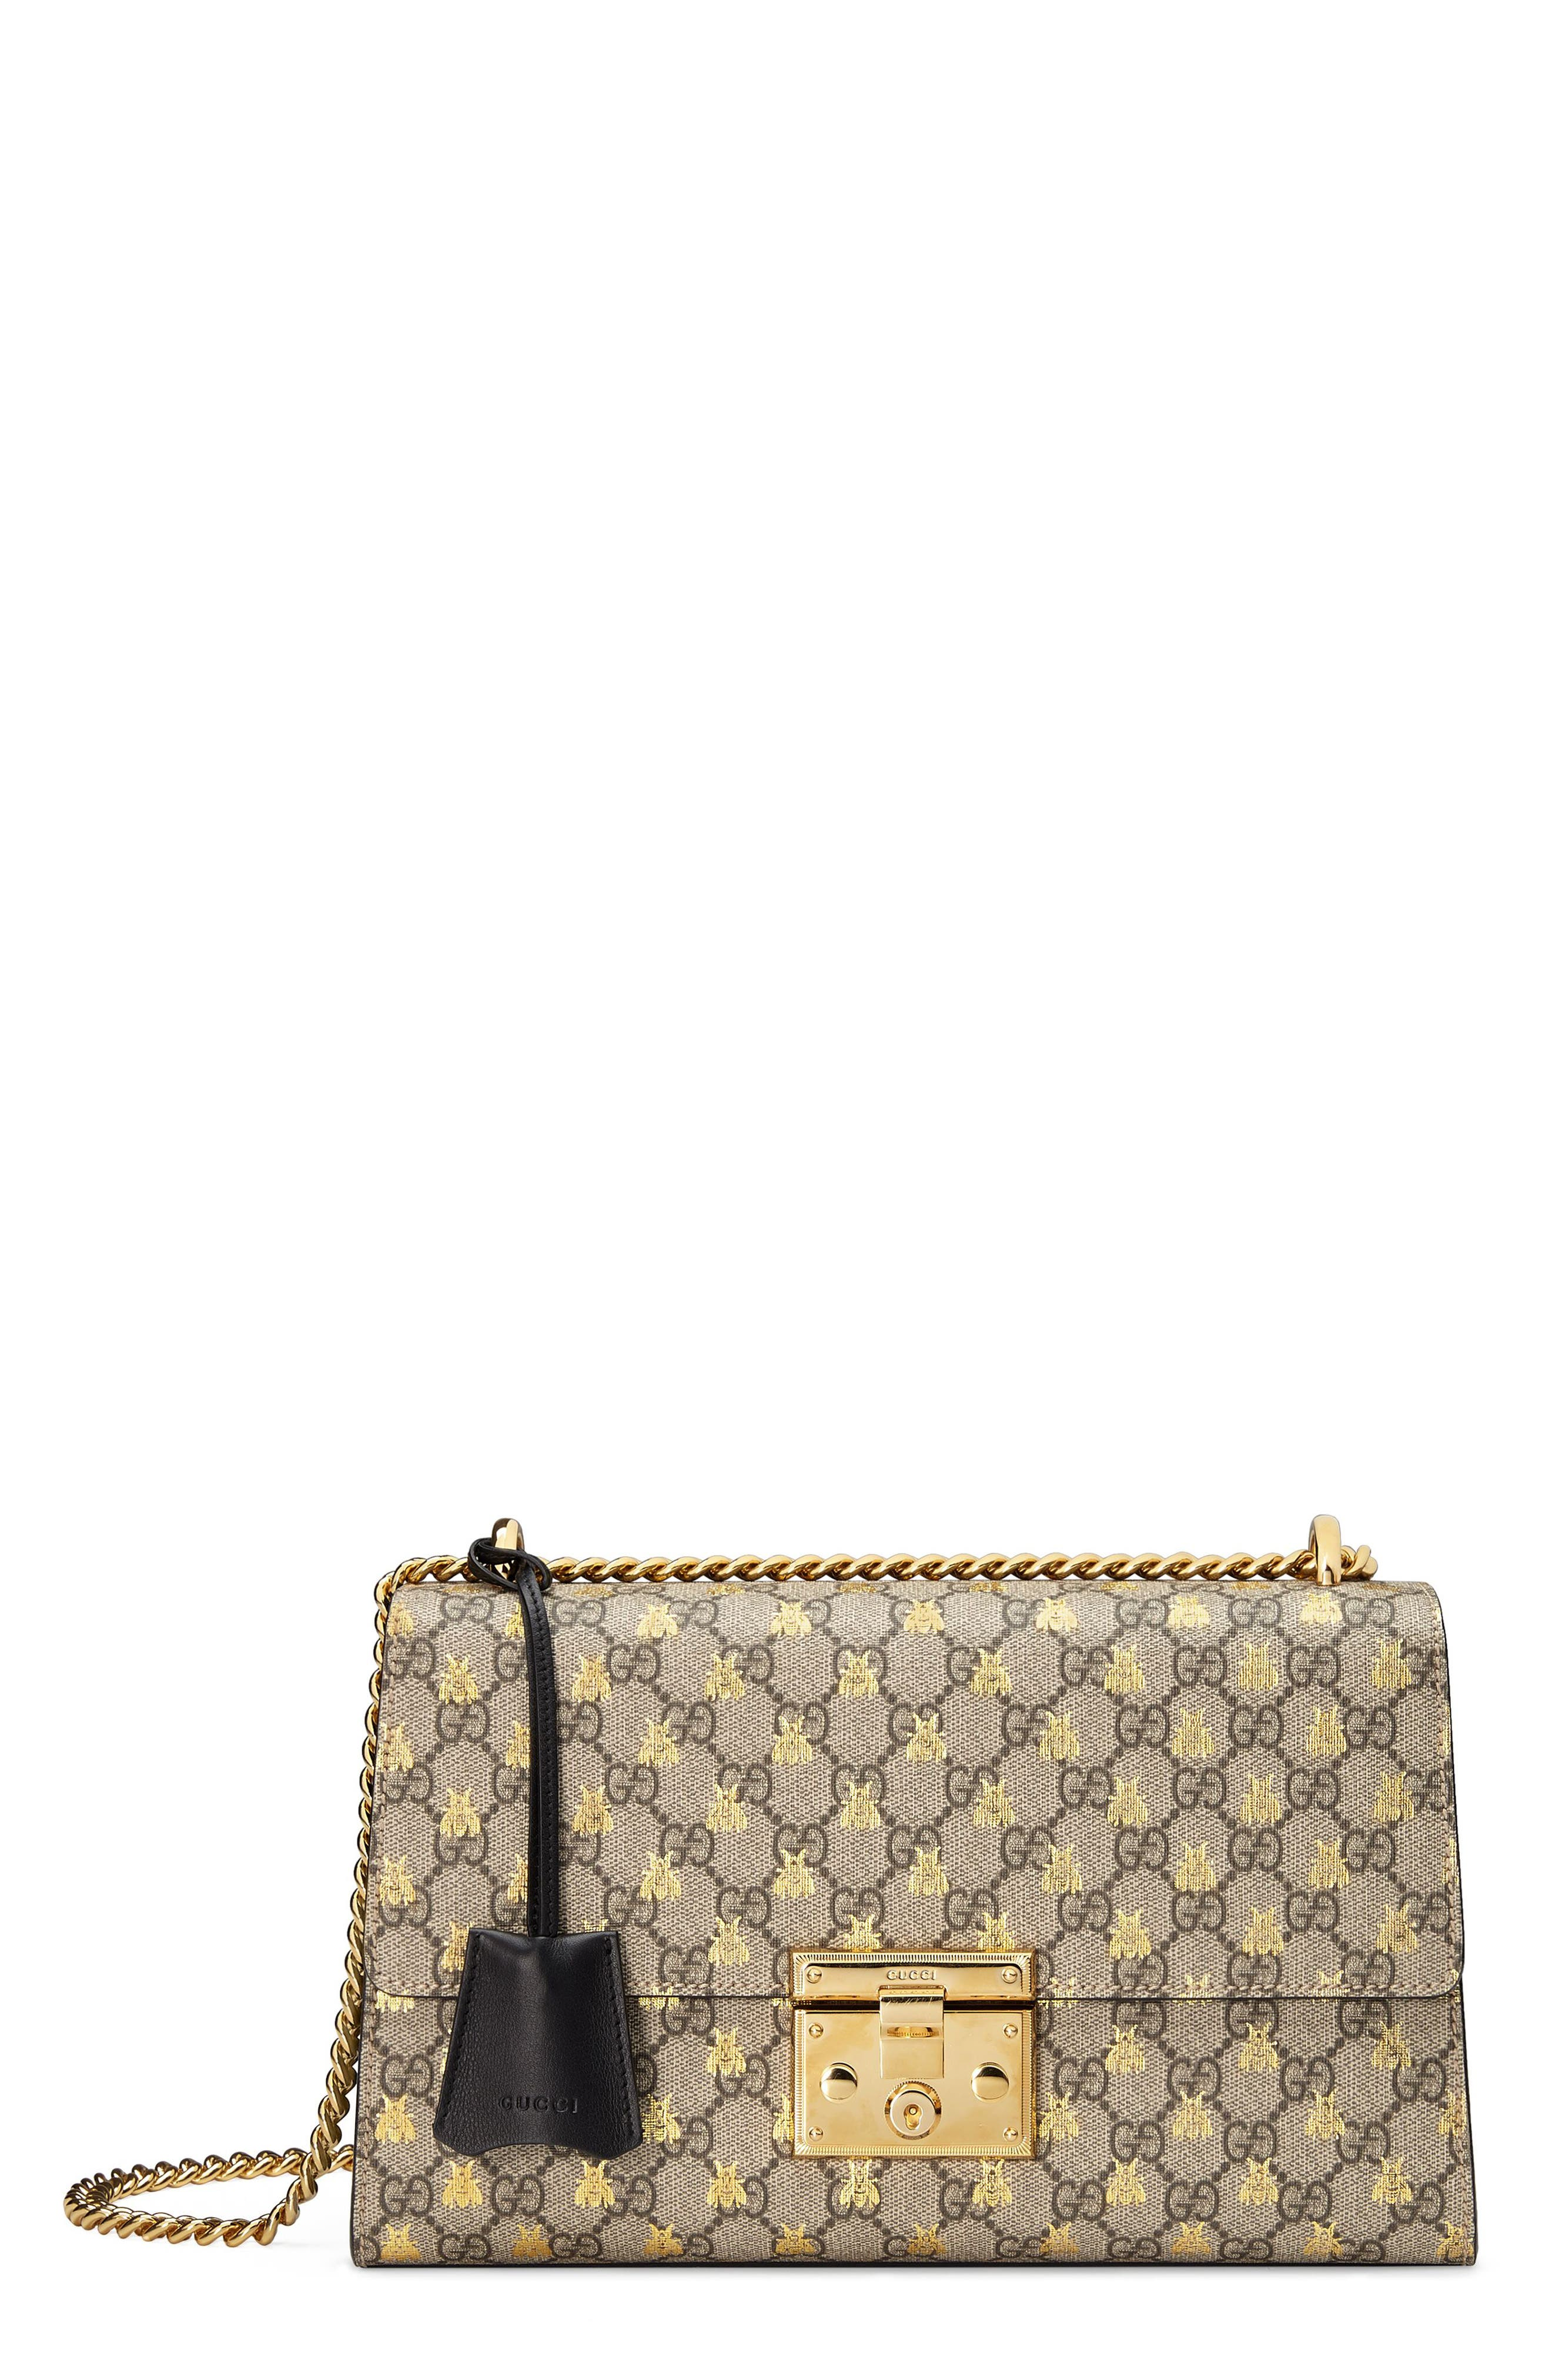 Alternate Image 1 Selected - Gucci Medium Padlock GG Supreme Bee Shoulder Bag